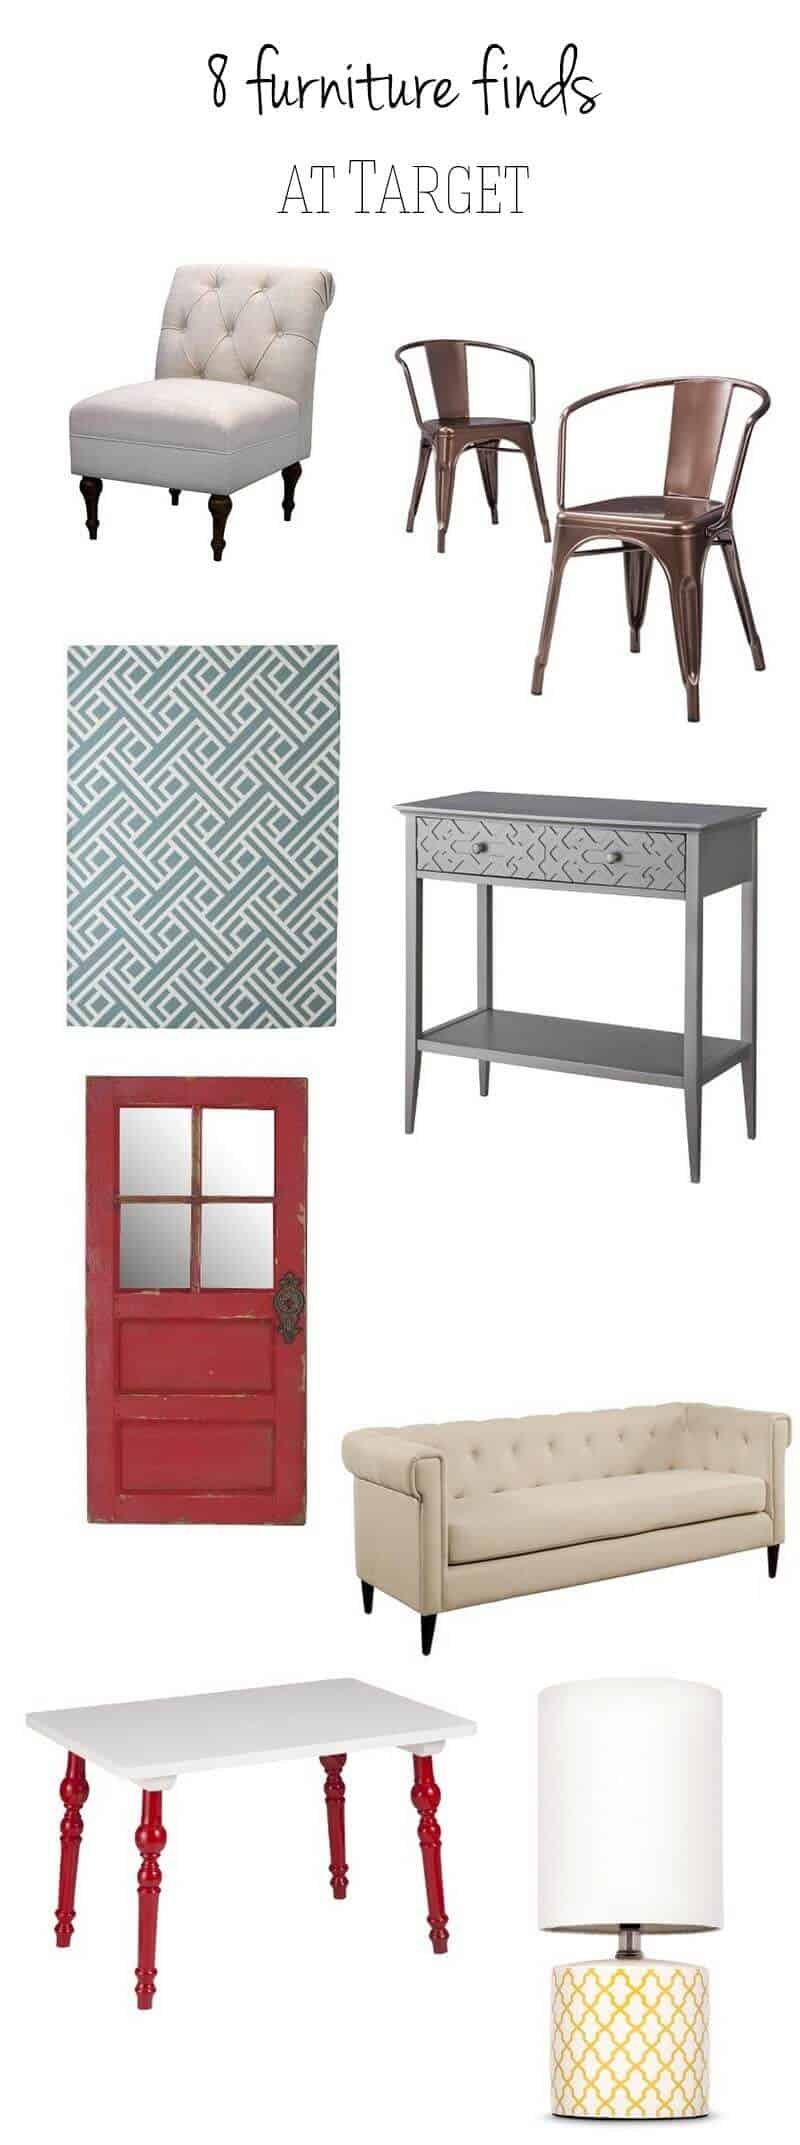 8 Furniture Finds At Target I Heart Nap Time